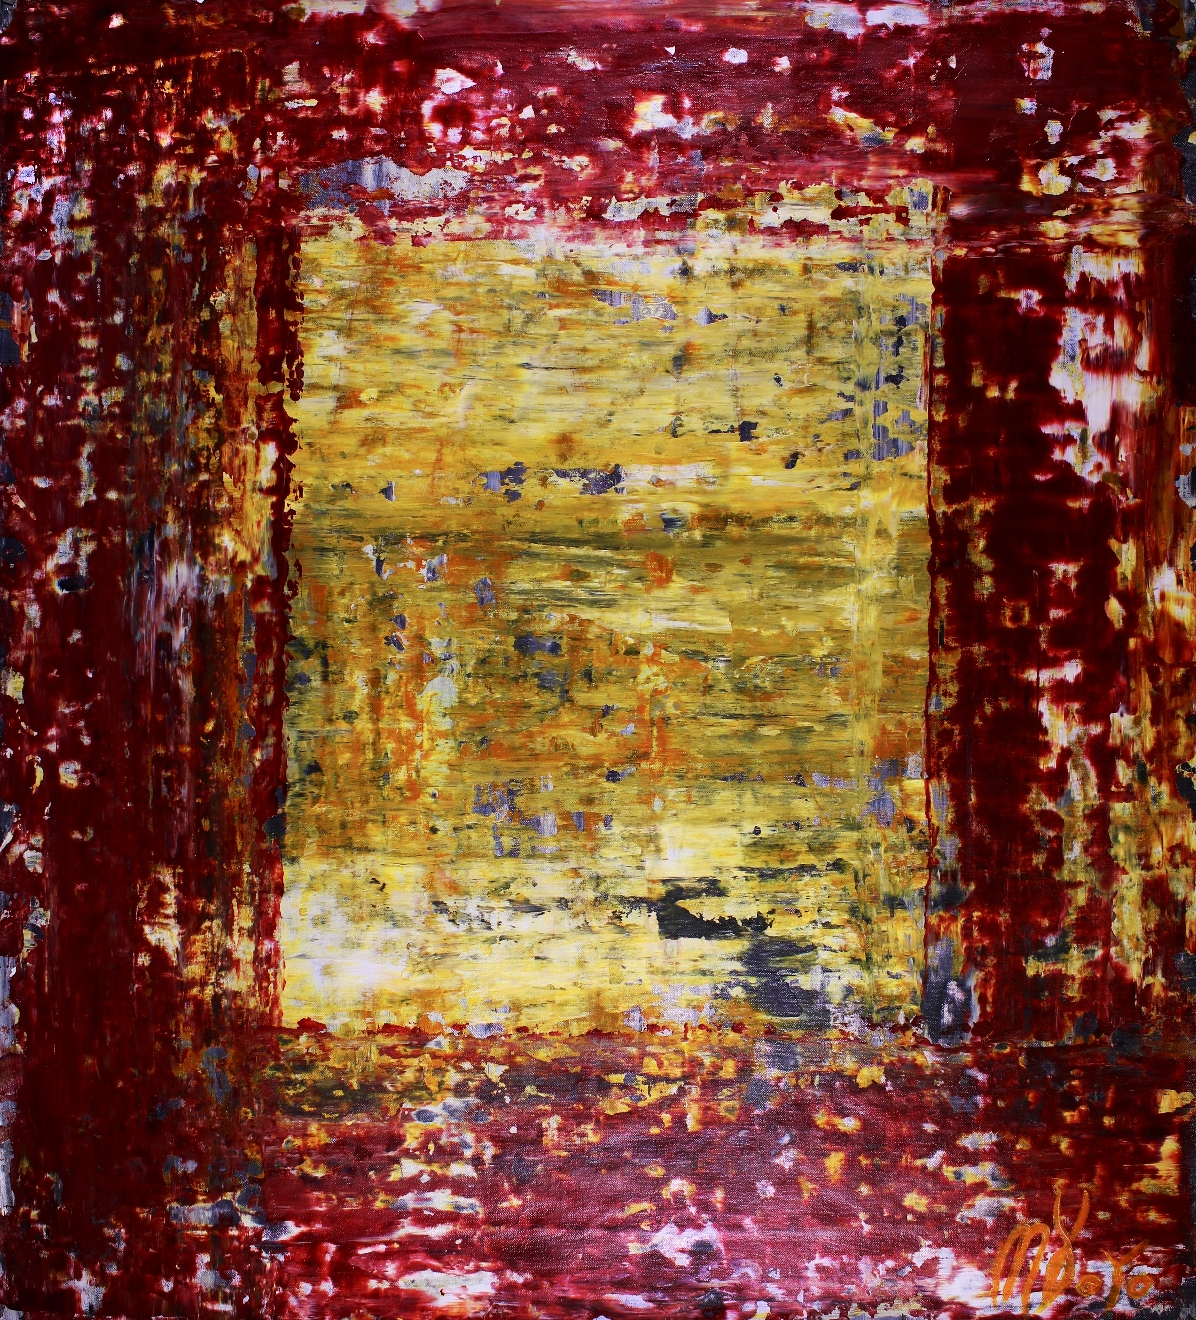 End of the Tunnel (2018)abstract art - Acrylic painting by Nestor Toro